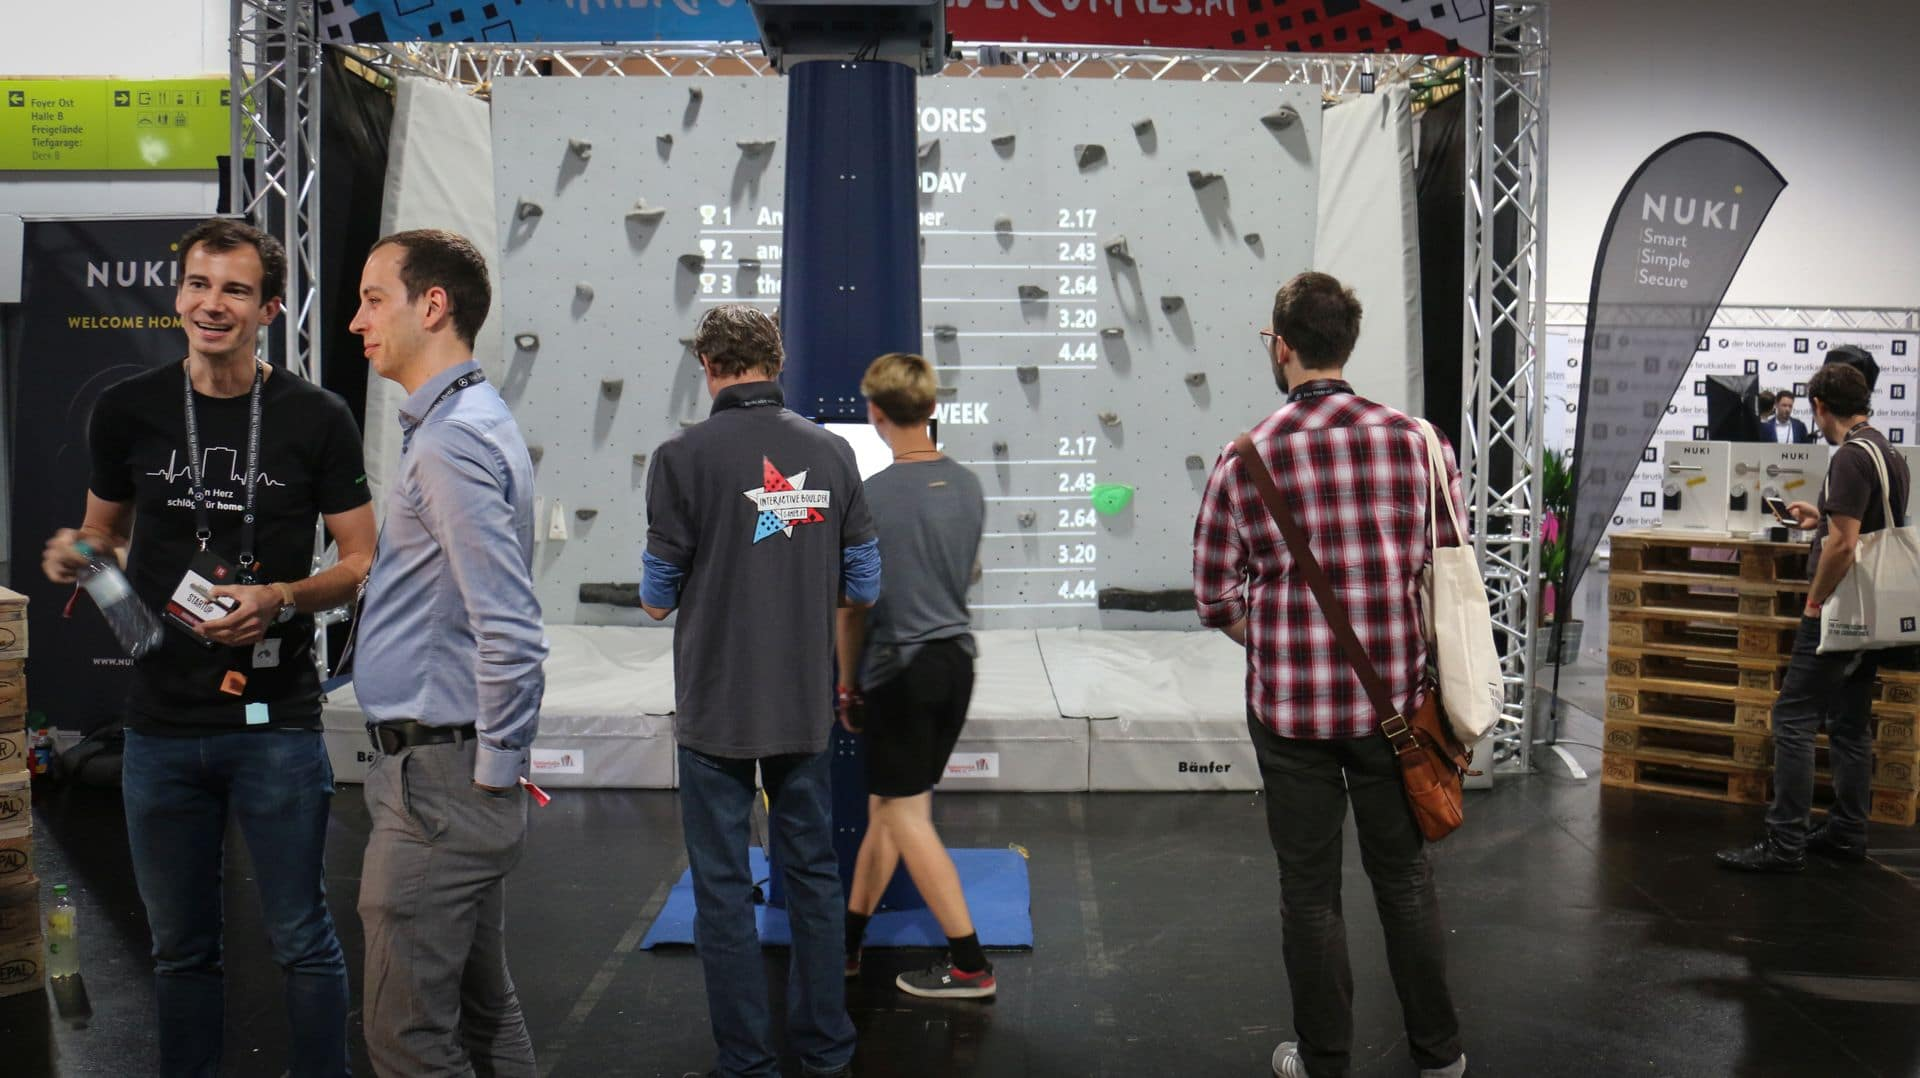 interactive boulder games at fifteenseconds festival